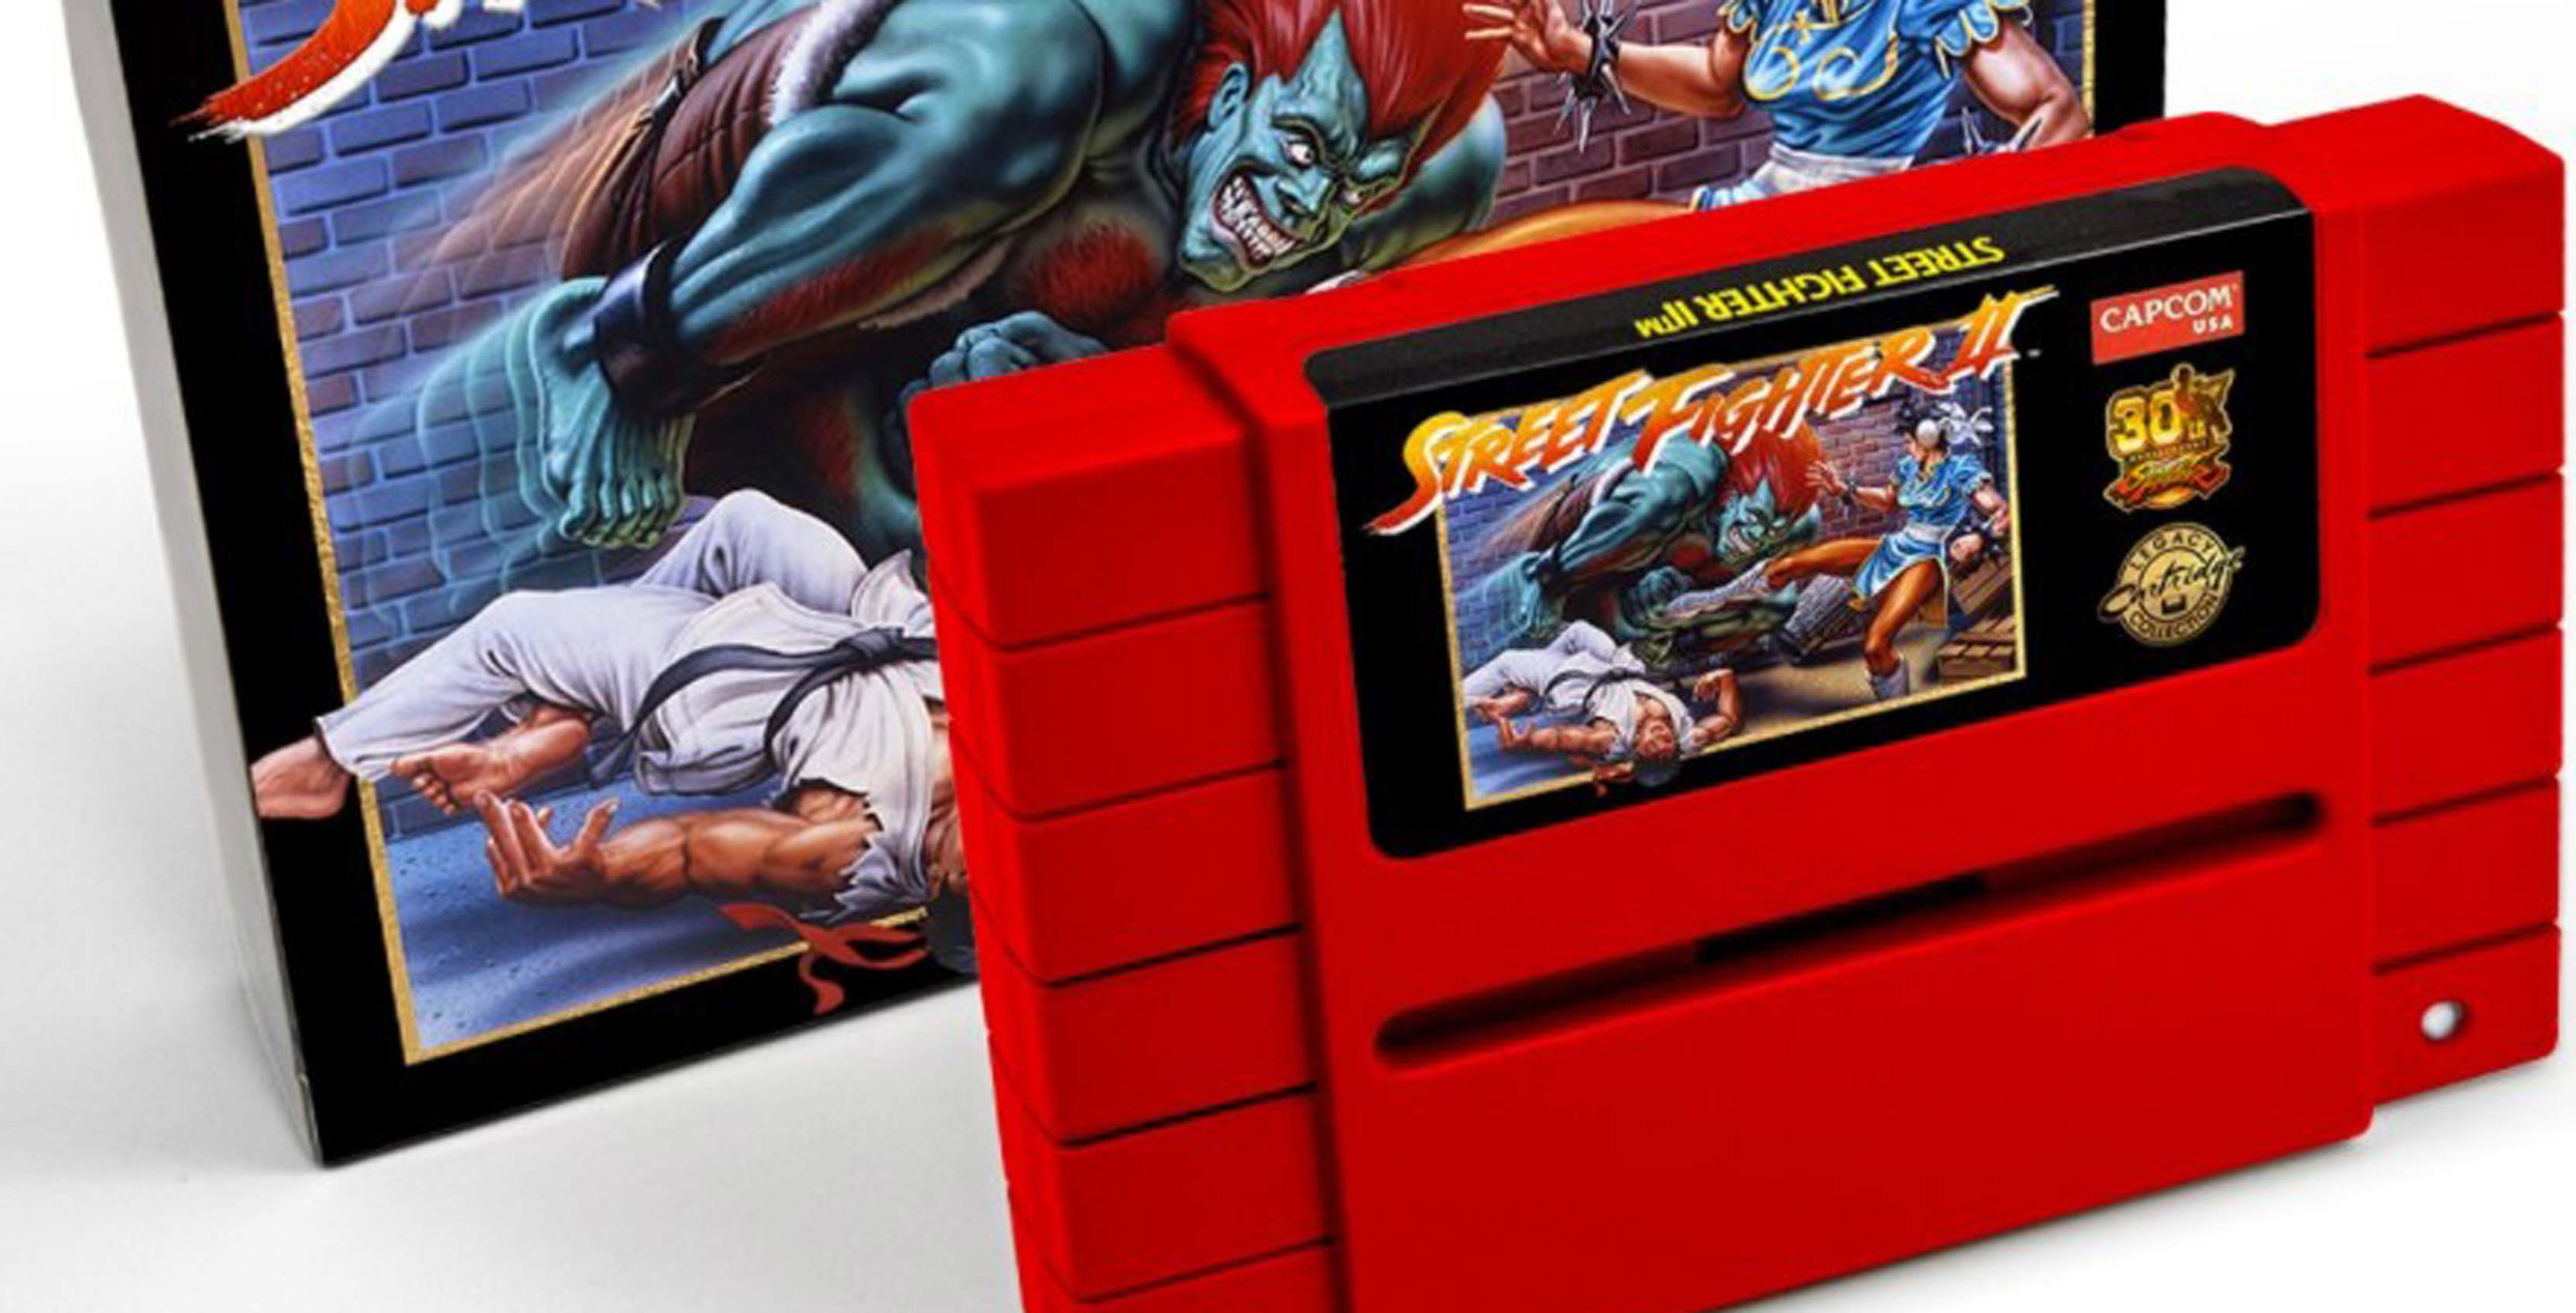 Street Fighter SNES